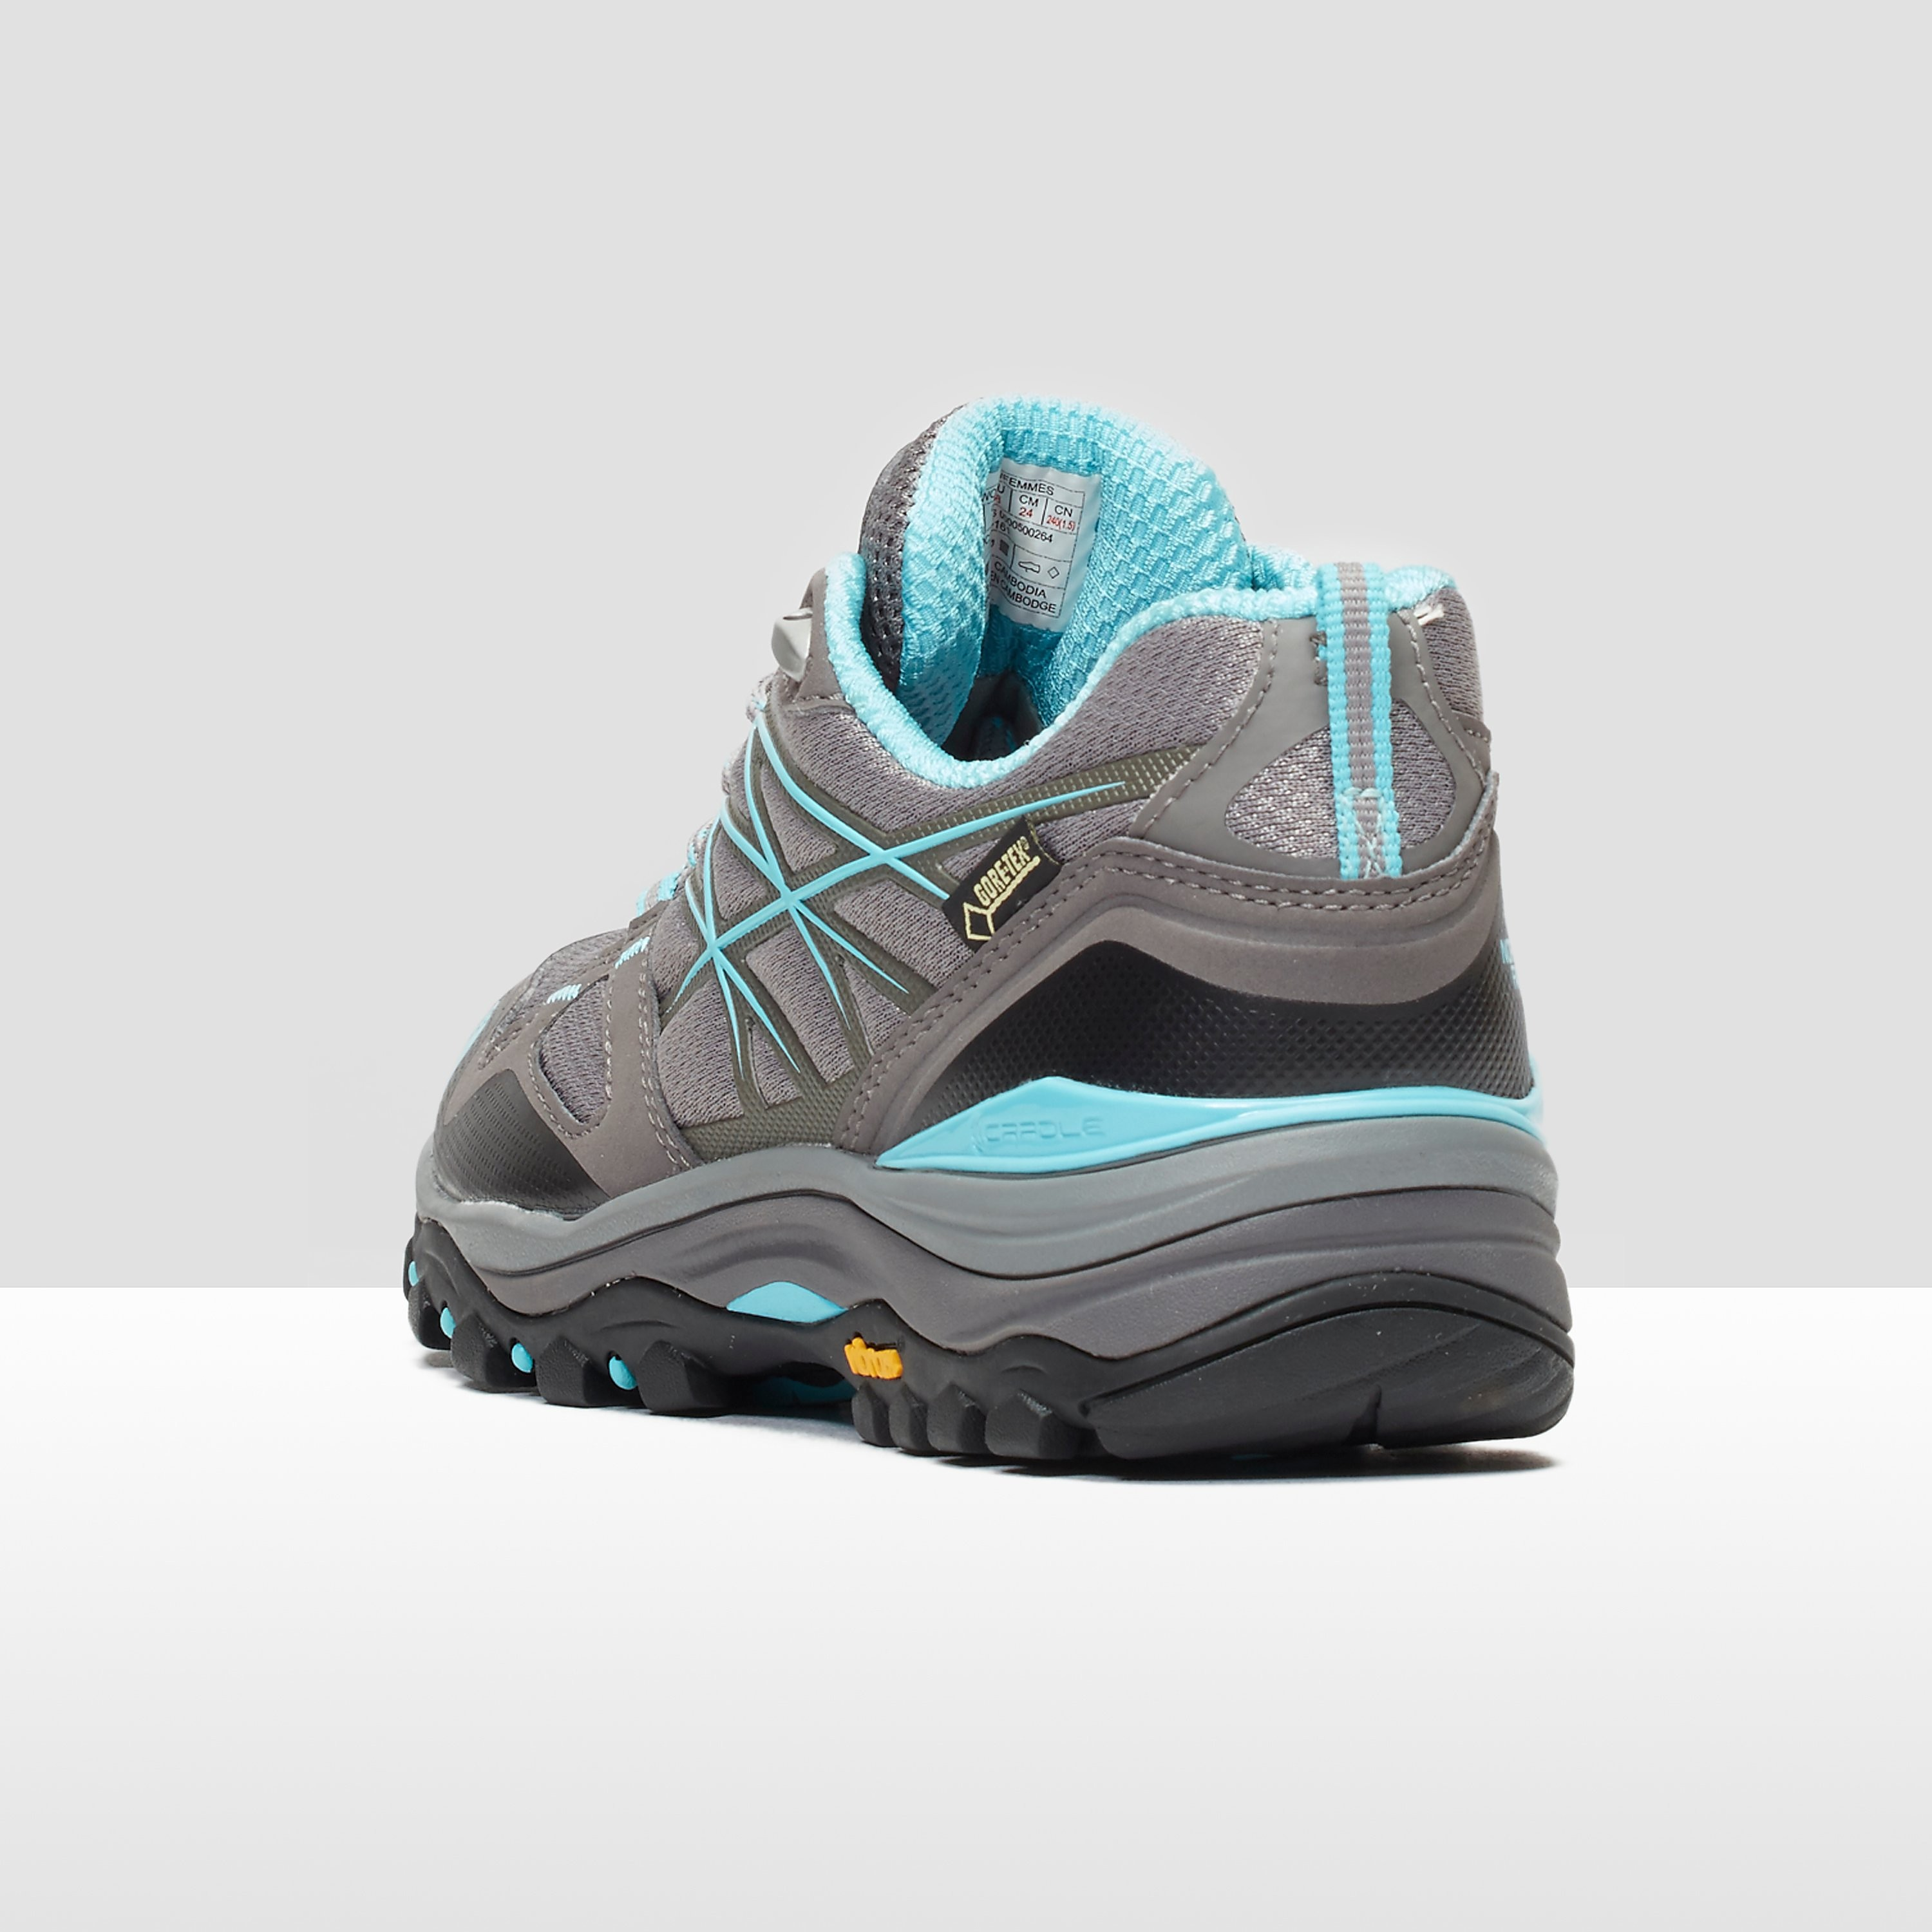 The North Face Hedgehog Fastpack GTX Women's Walking Shoes